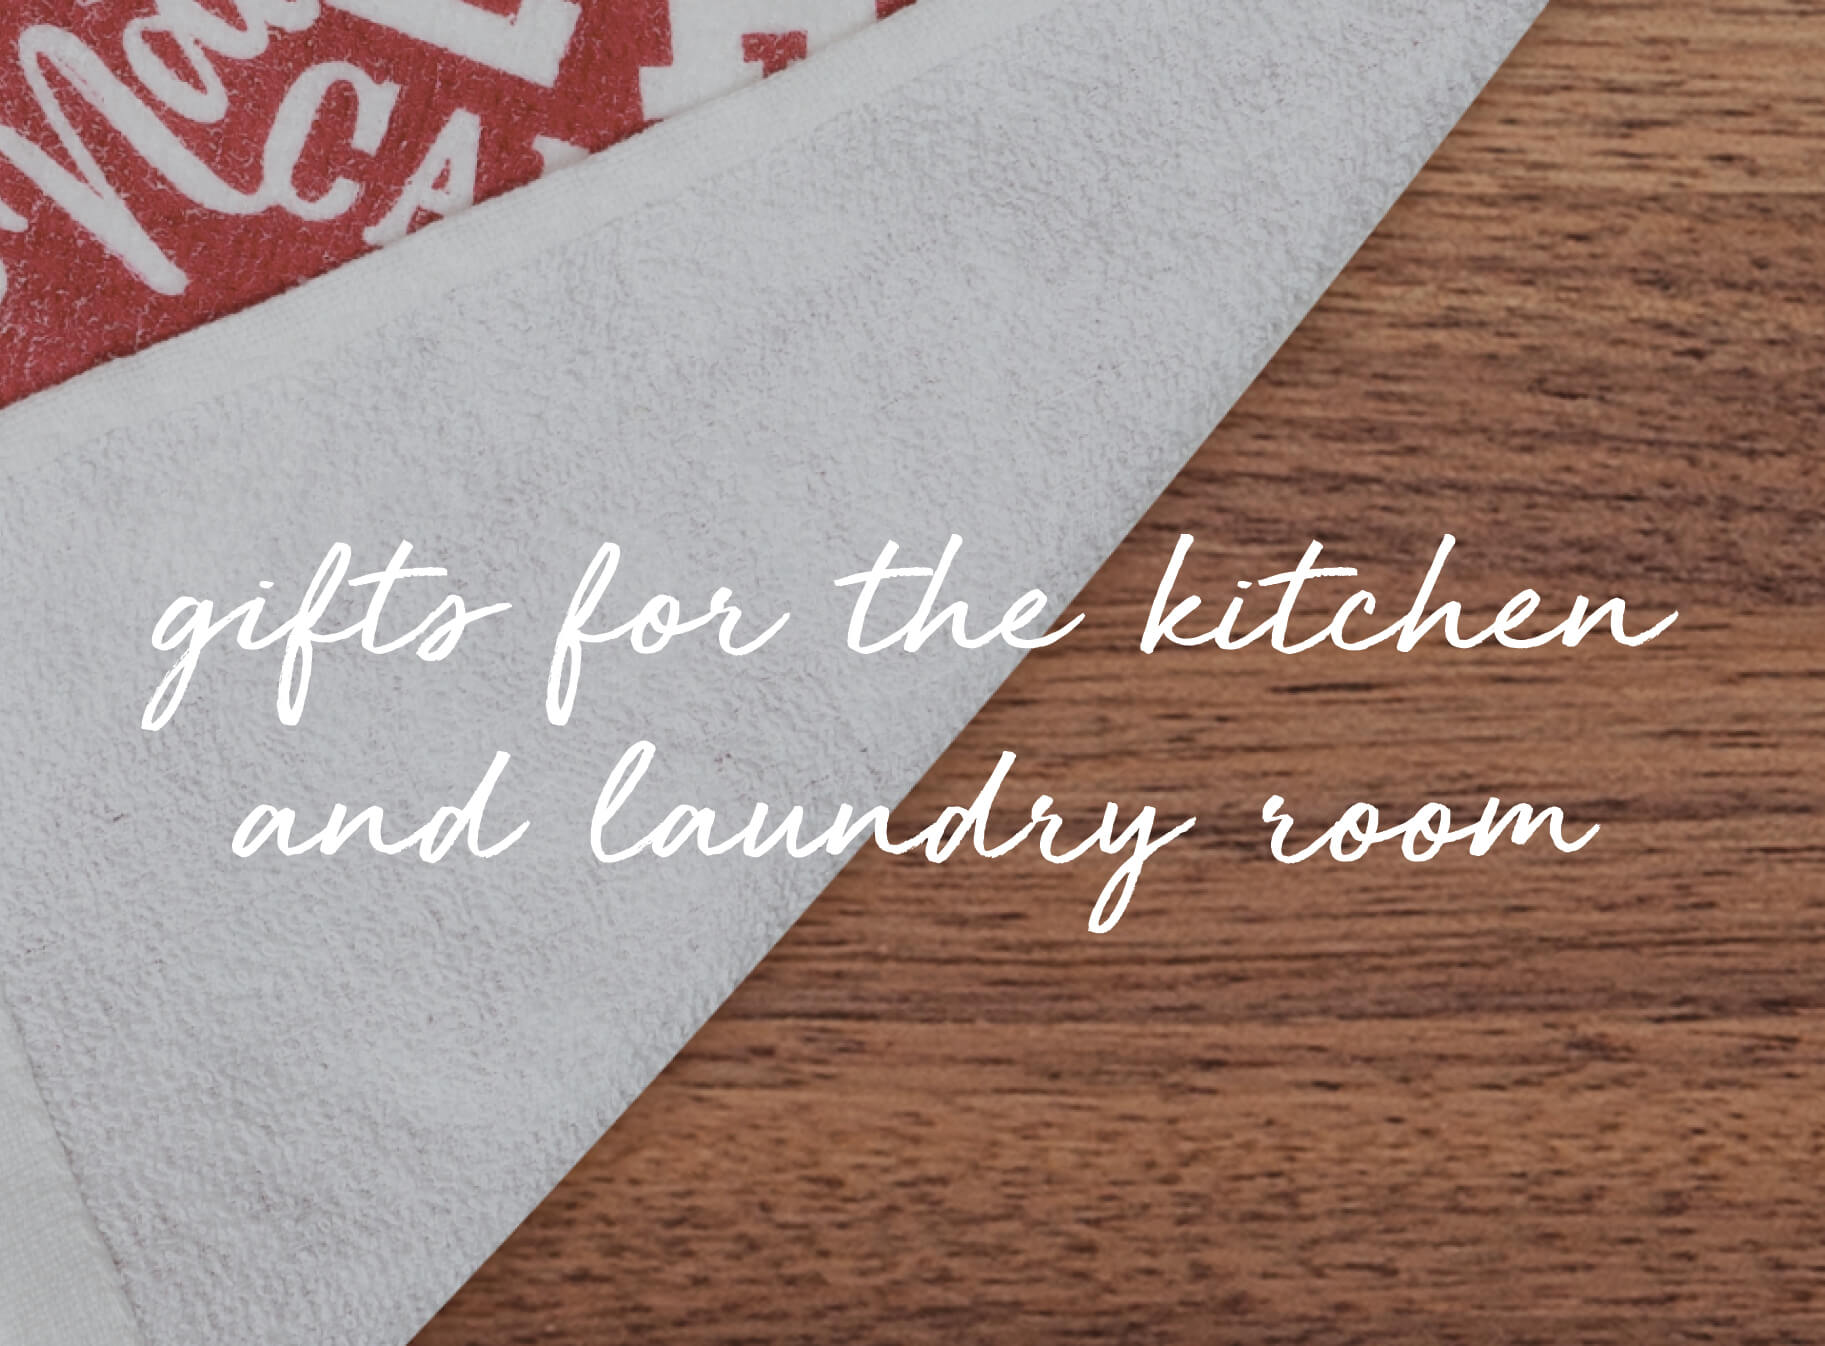 Kitchen & Laundry Room Gifts